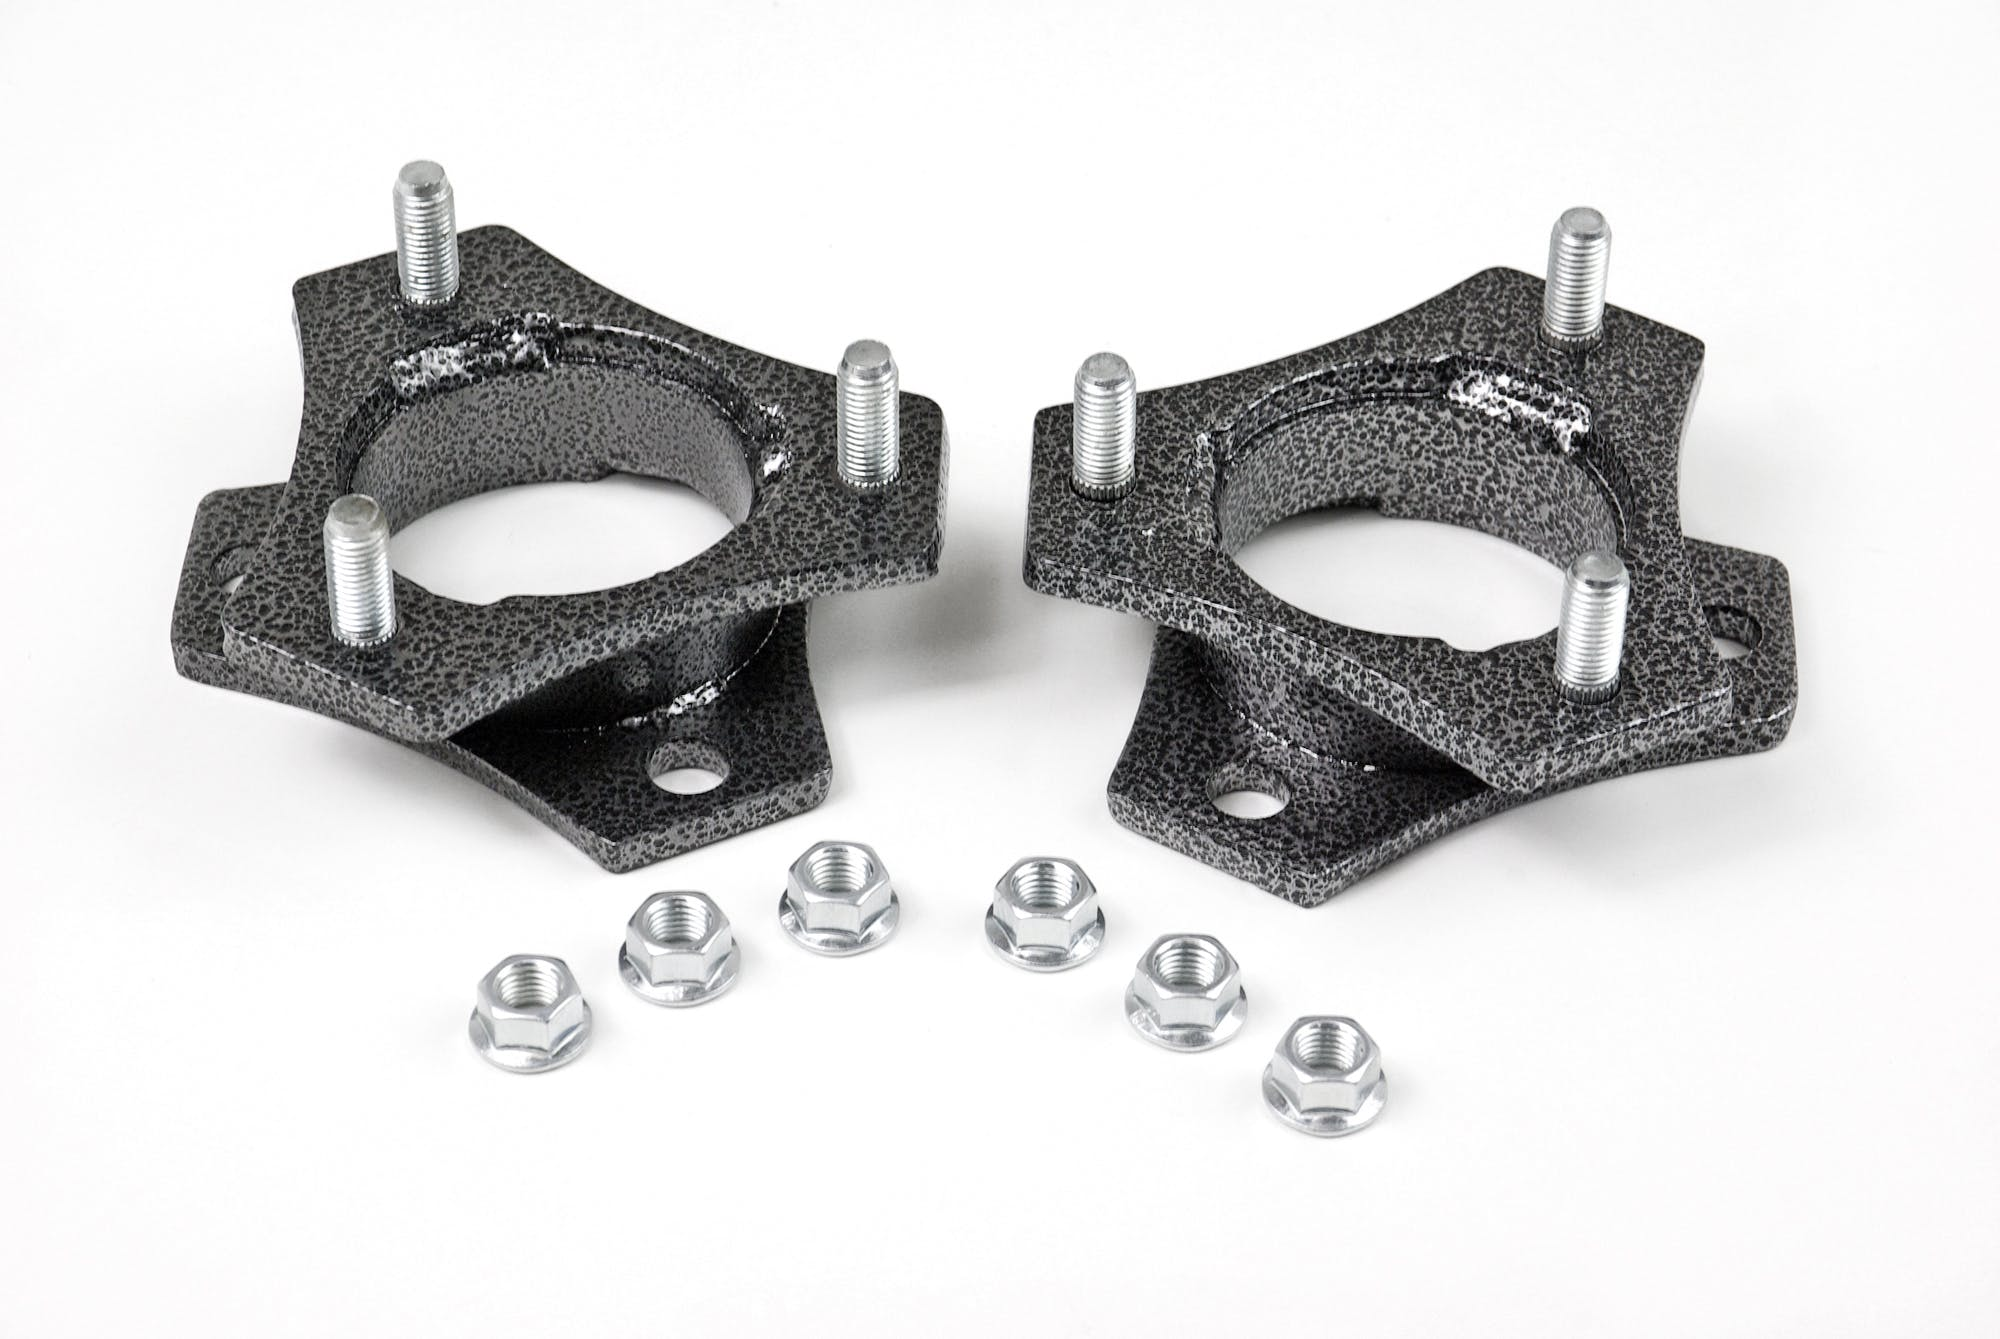 Rugged Off Road 7-105 2.5 Front Leveling Kit